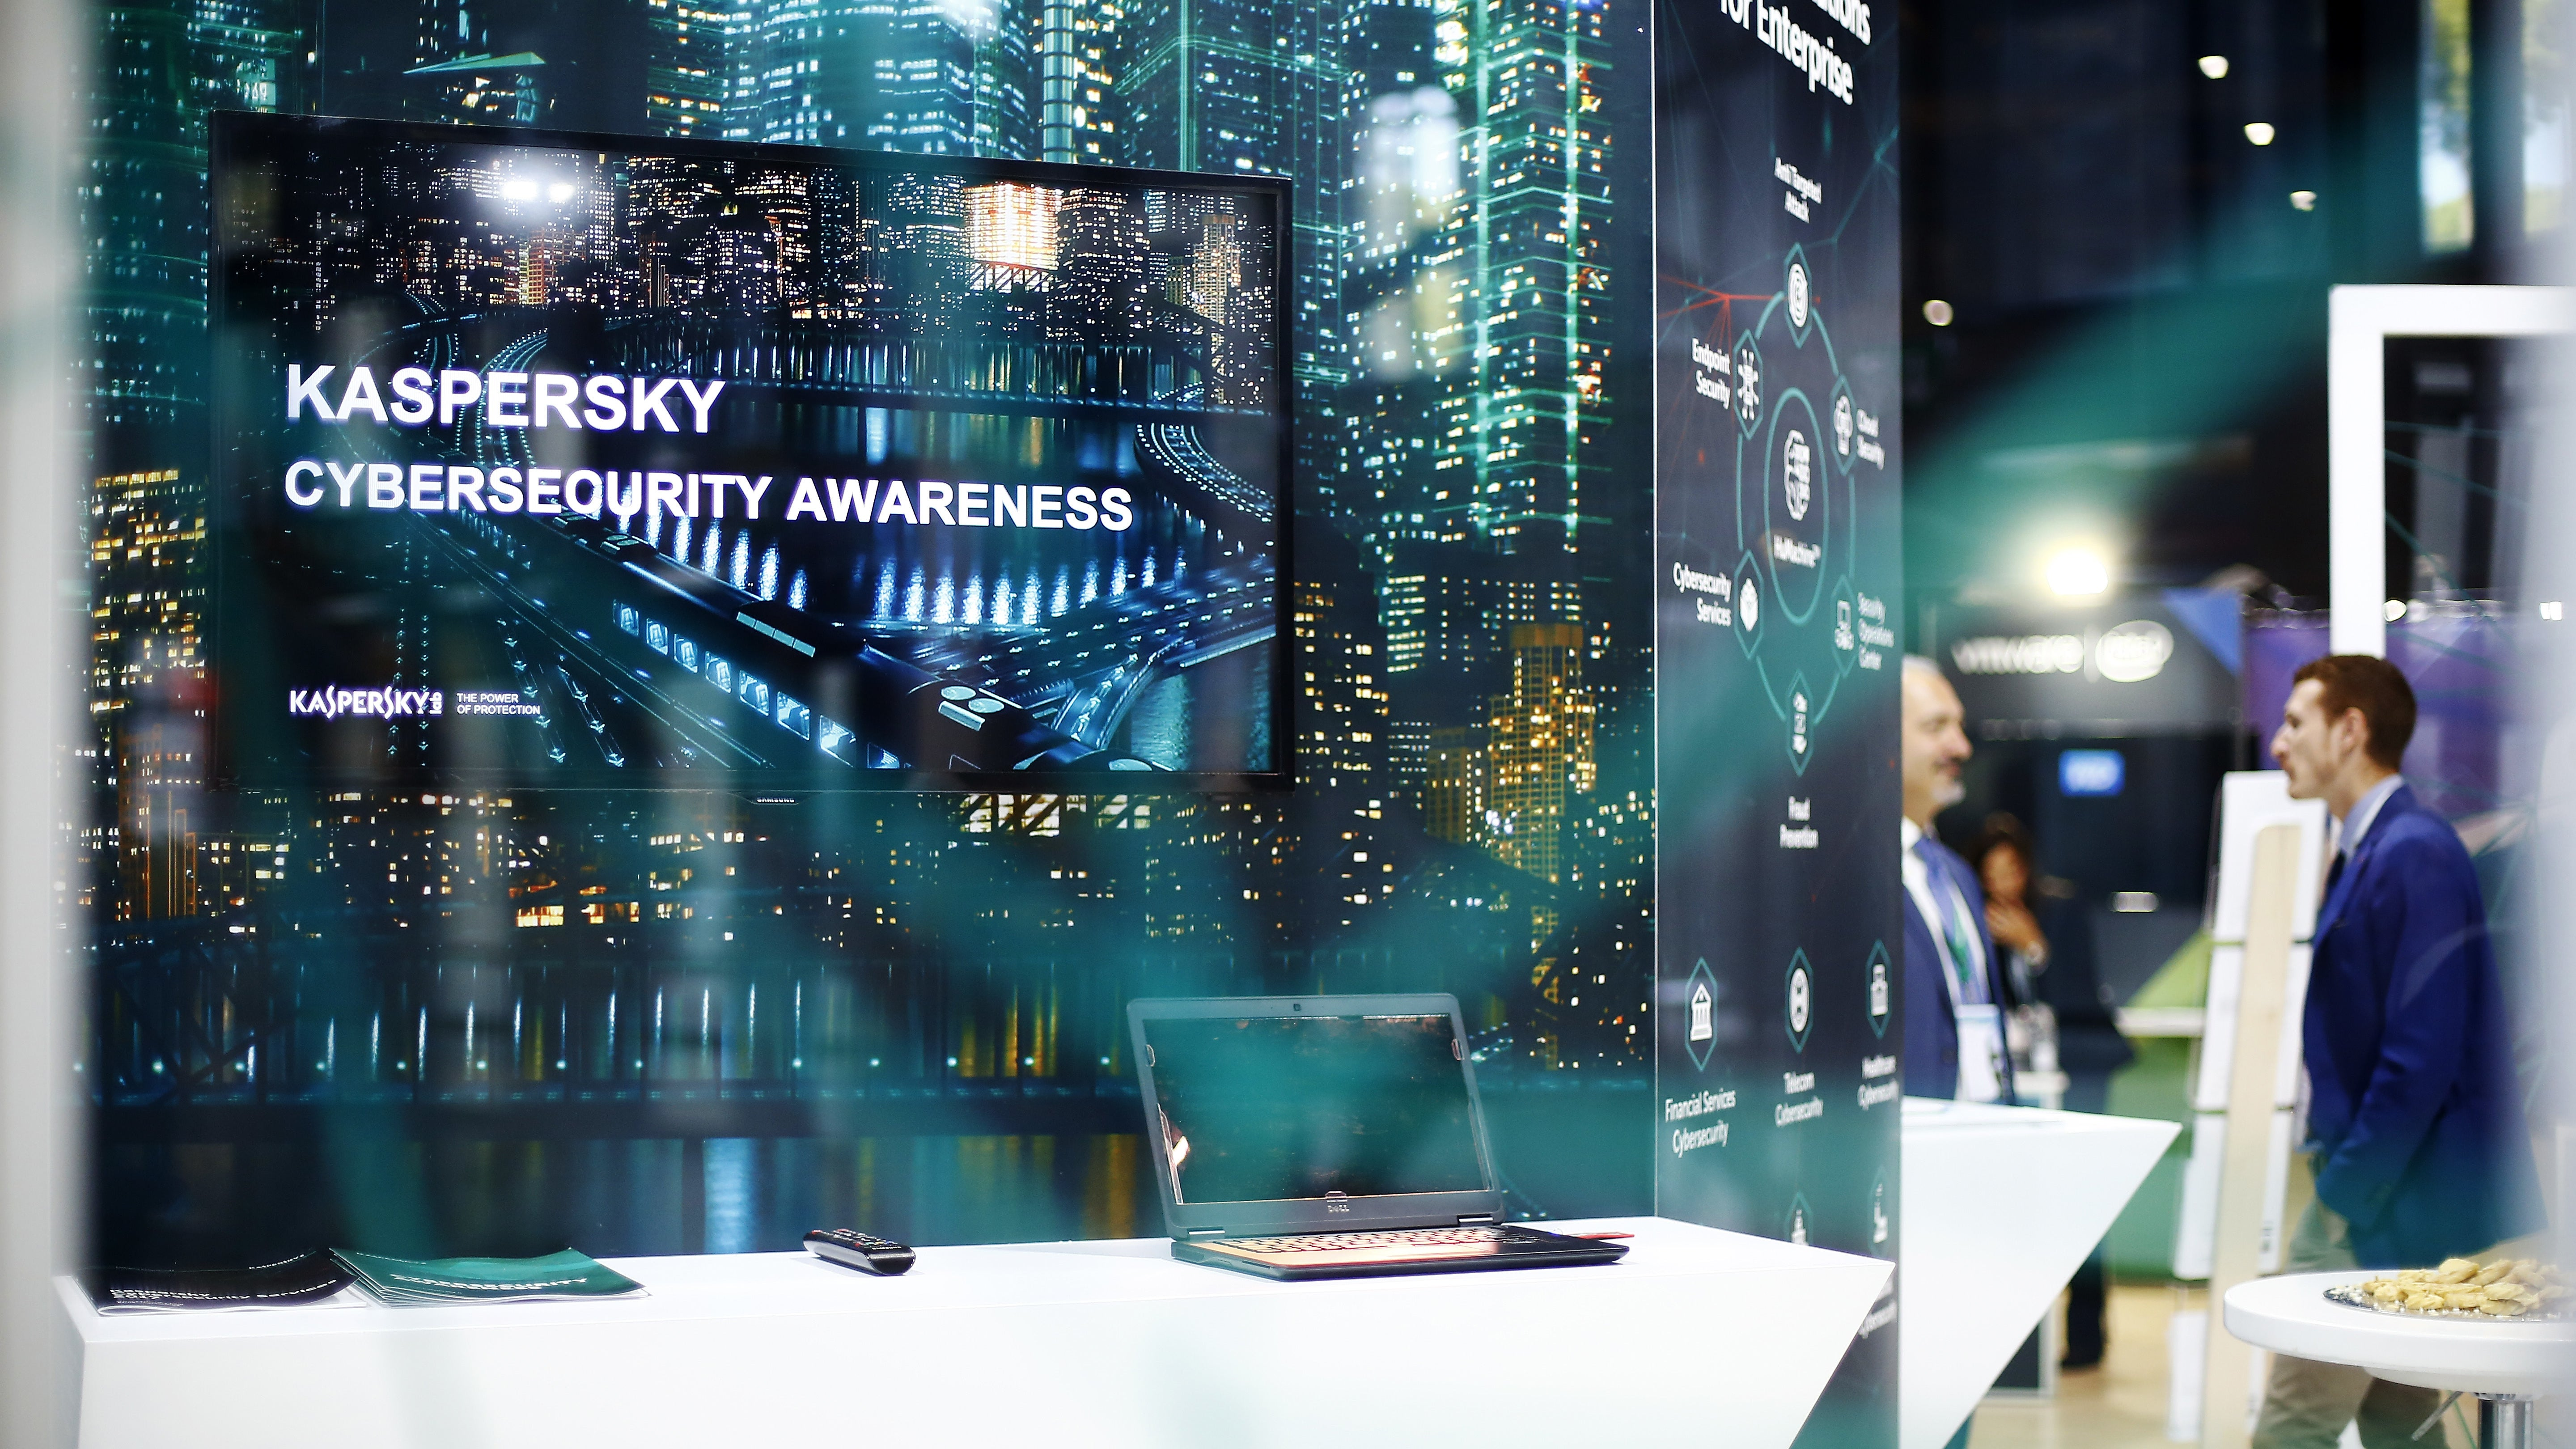 Kaspersky Closes DC Office, Says It Is 'No Longer Viable' To Work With US Government